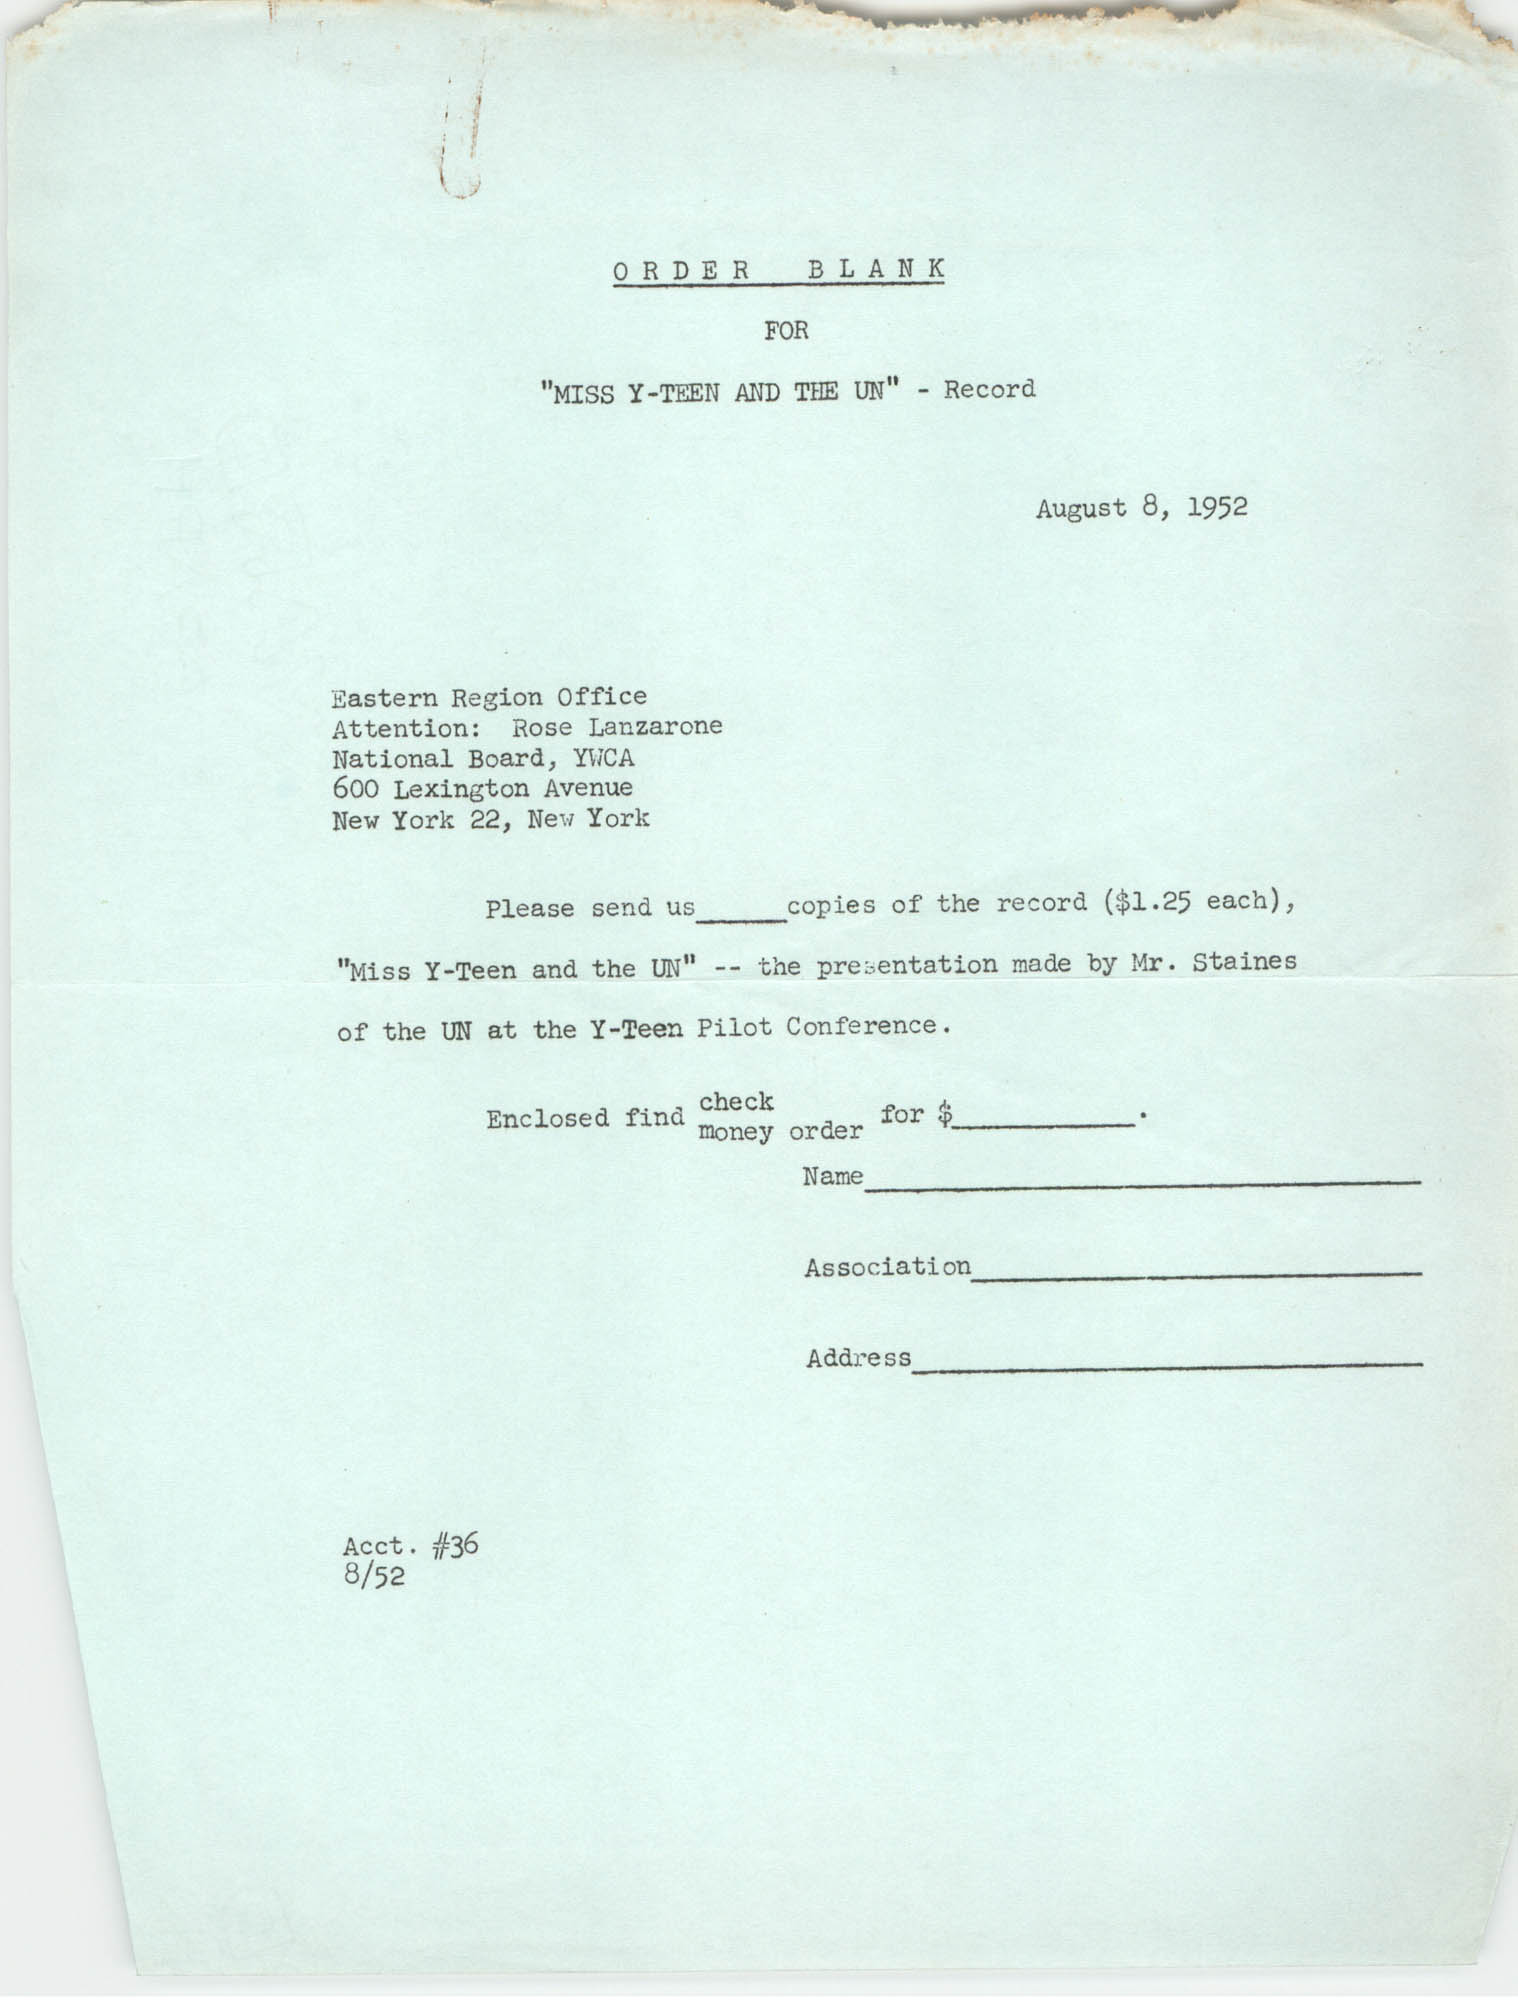 Order Blank, Eastern Region Office of the Y.W.C.A., August 8, 1952